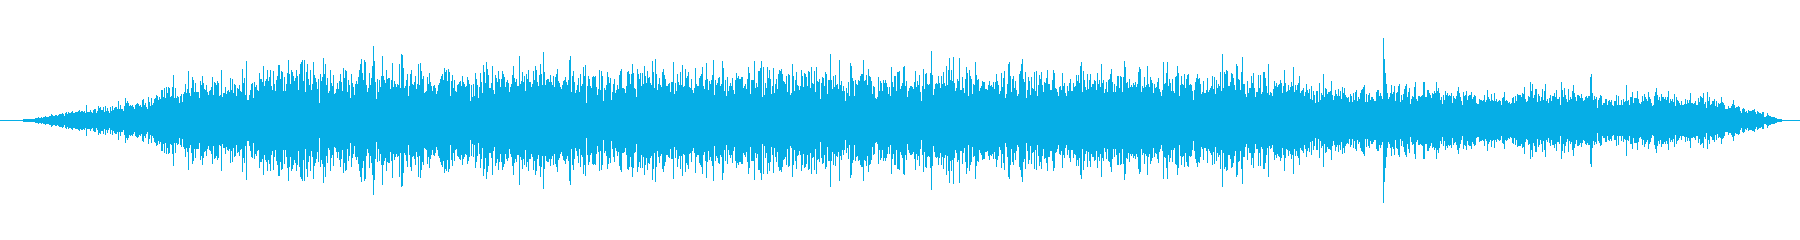 This is the sound of the takeoff of an airplane recorded on board.'s reproduced waveform